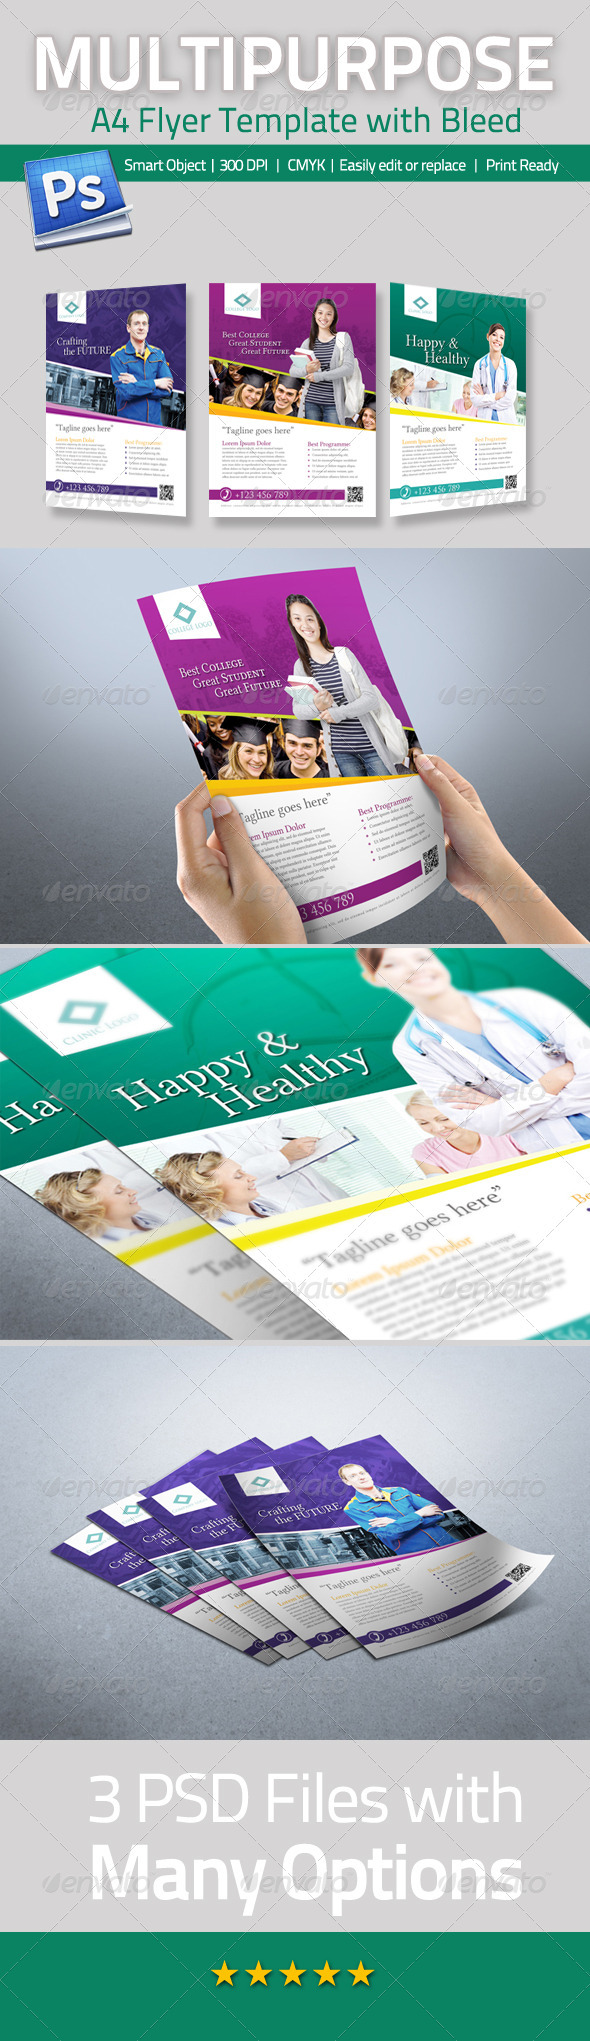 Multipurpose A4 Flyer Template - Corporate Flyers